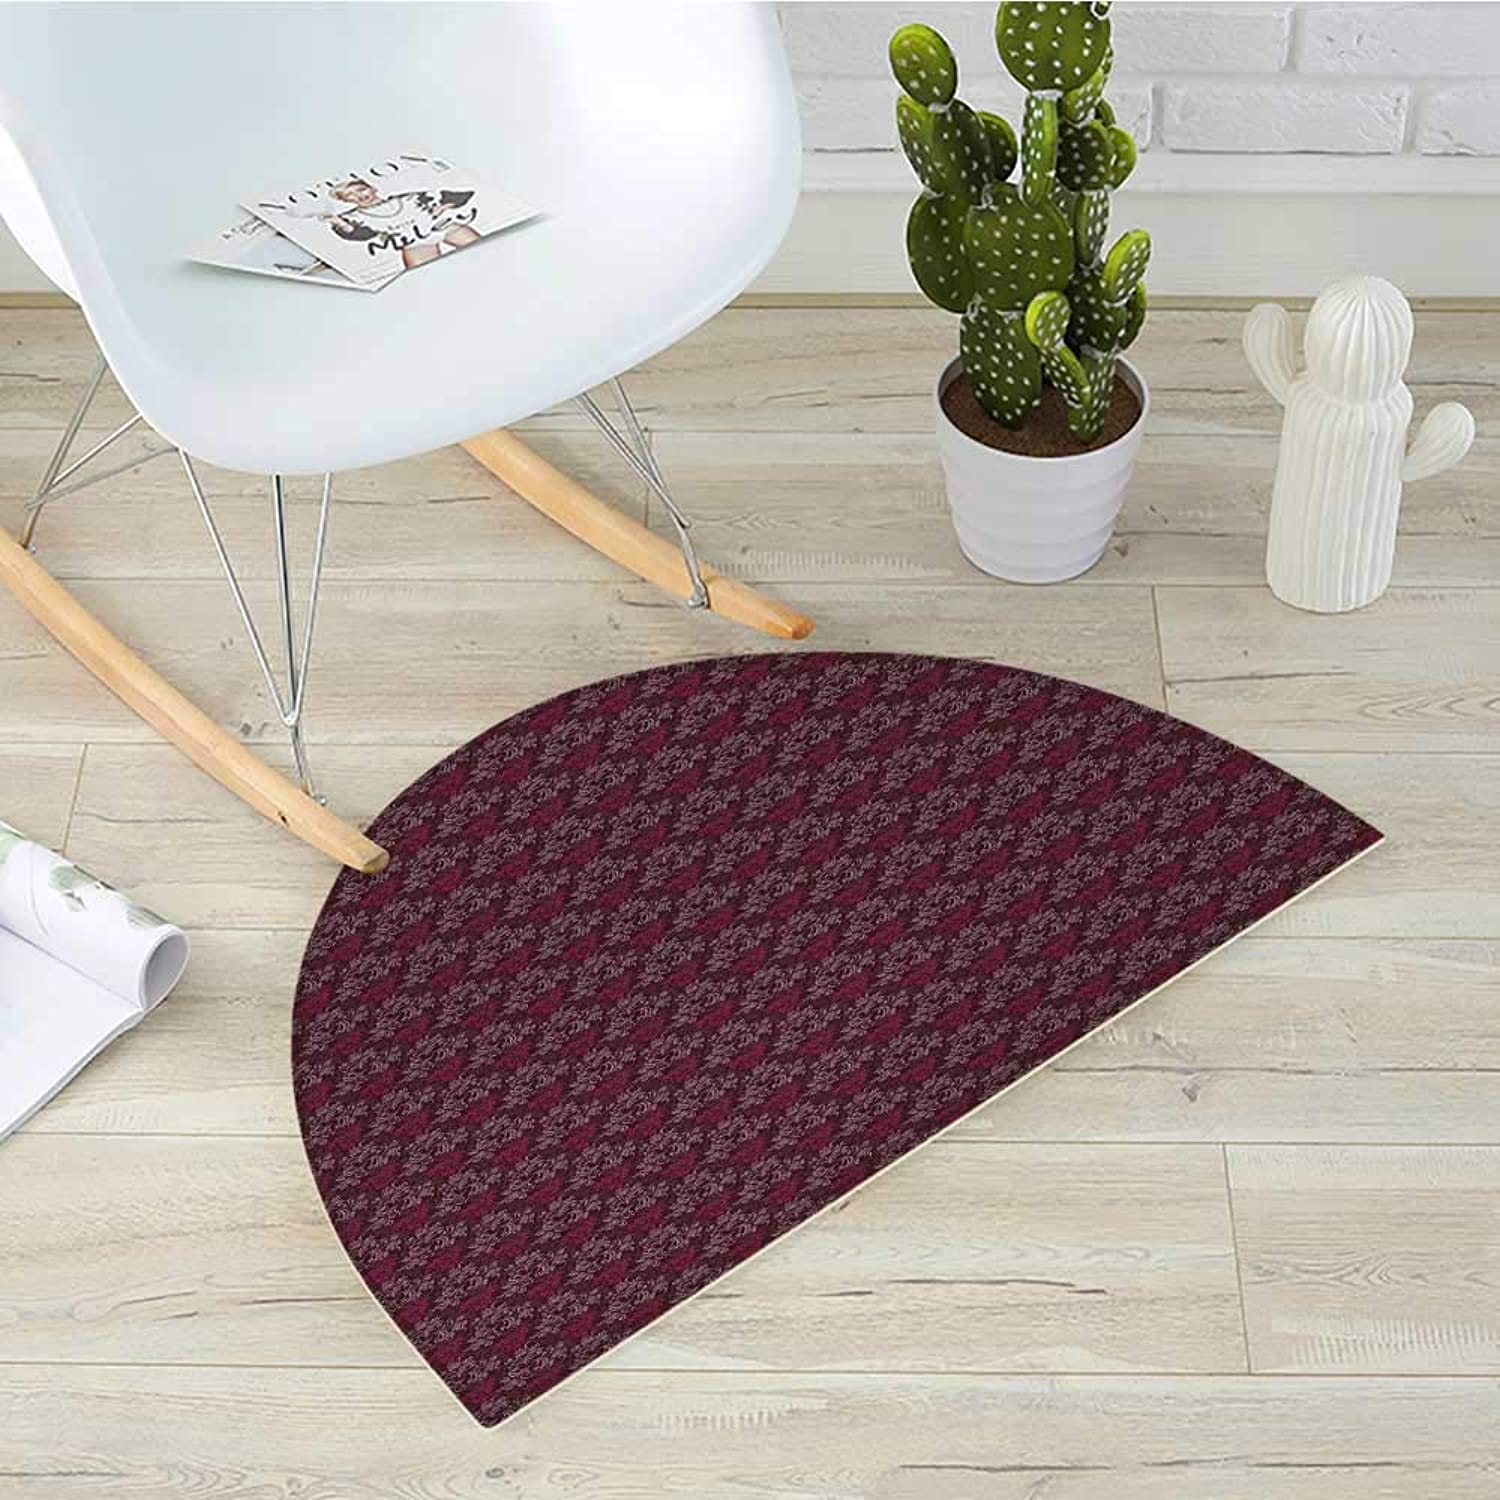 Floral Half Round Door mats Ornamental Royal Victorian Garden Leaves with Little Blossoms Bathroom Mat H 39.3  xD 59  Dark Brown Magenta and Mauve